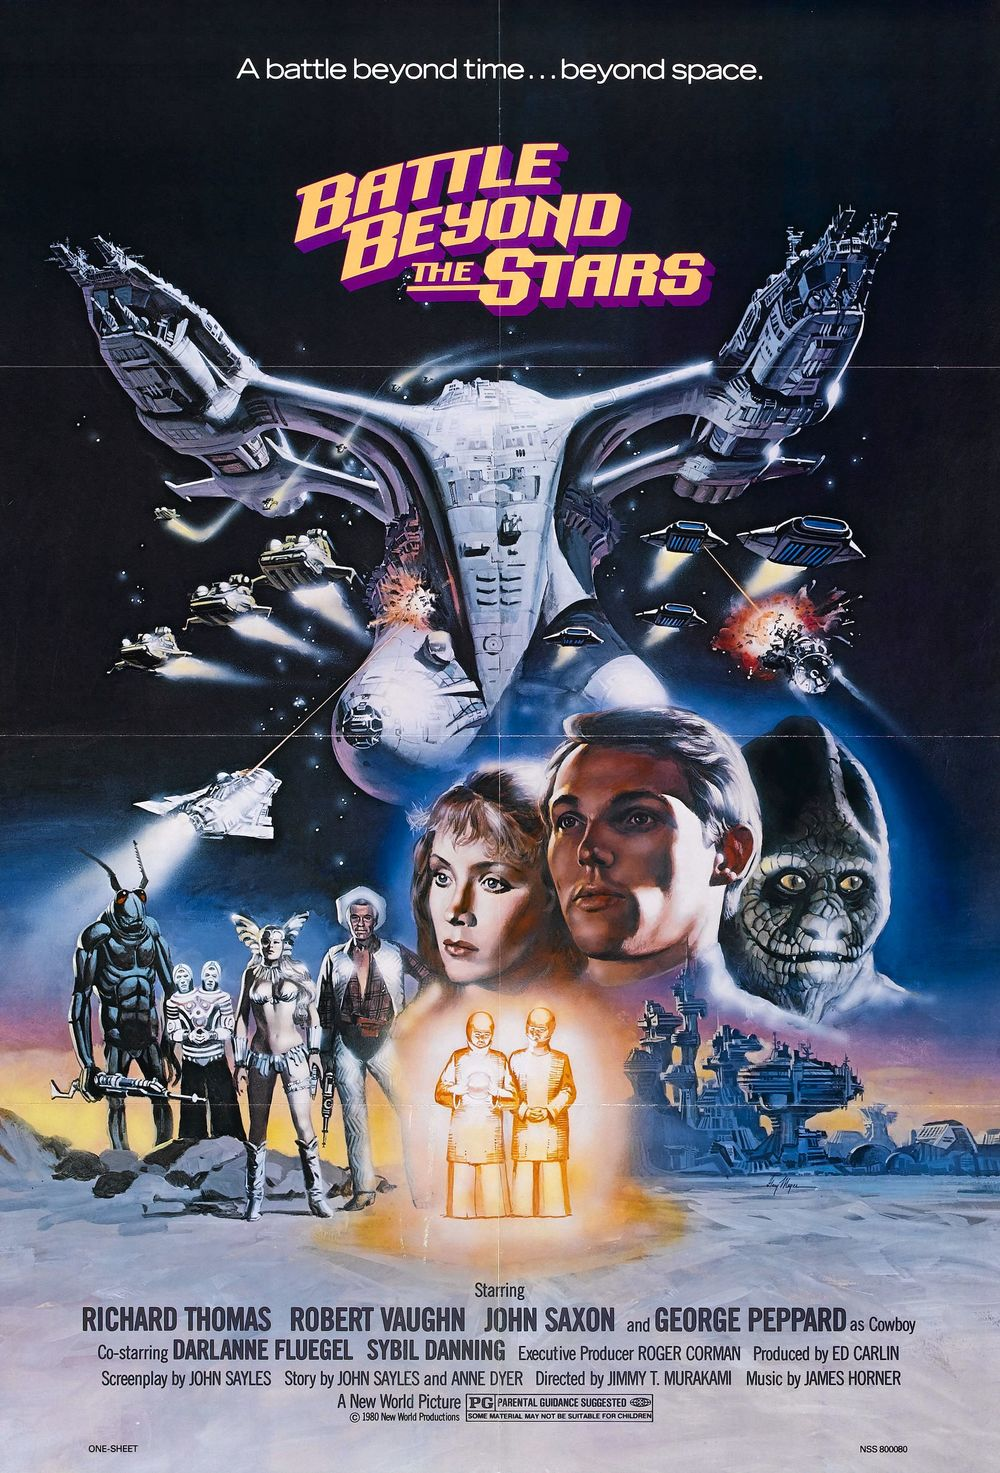 battle_beyond_stars_poster_01.jpg